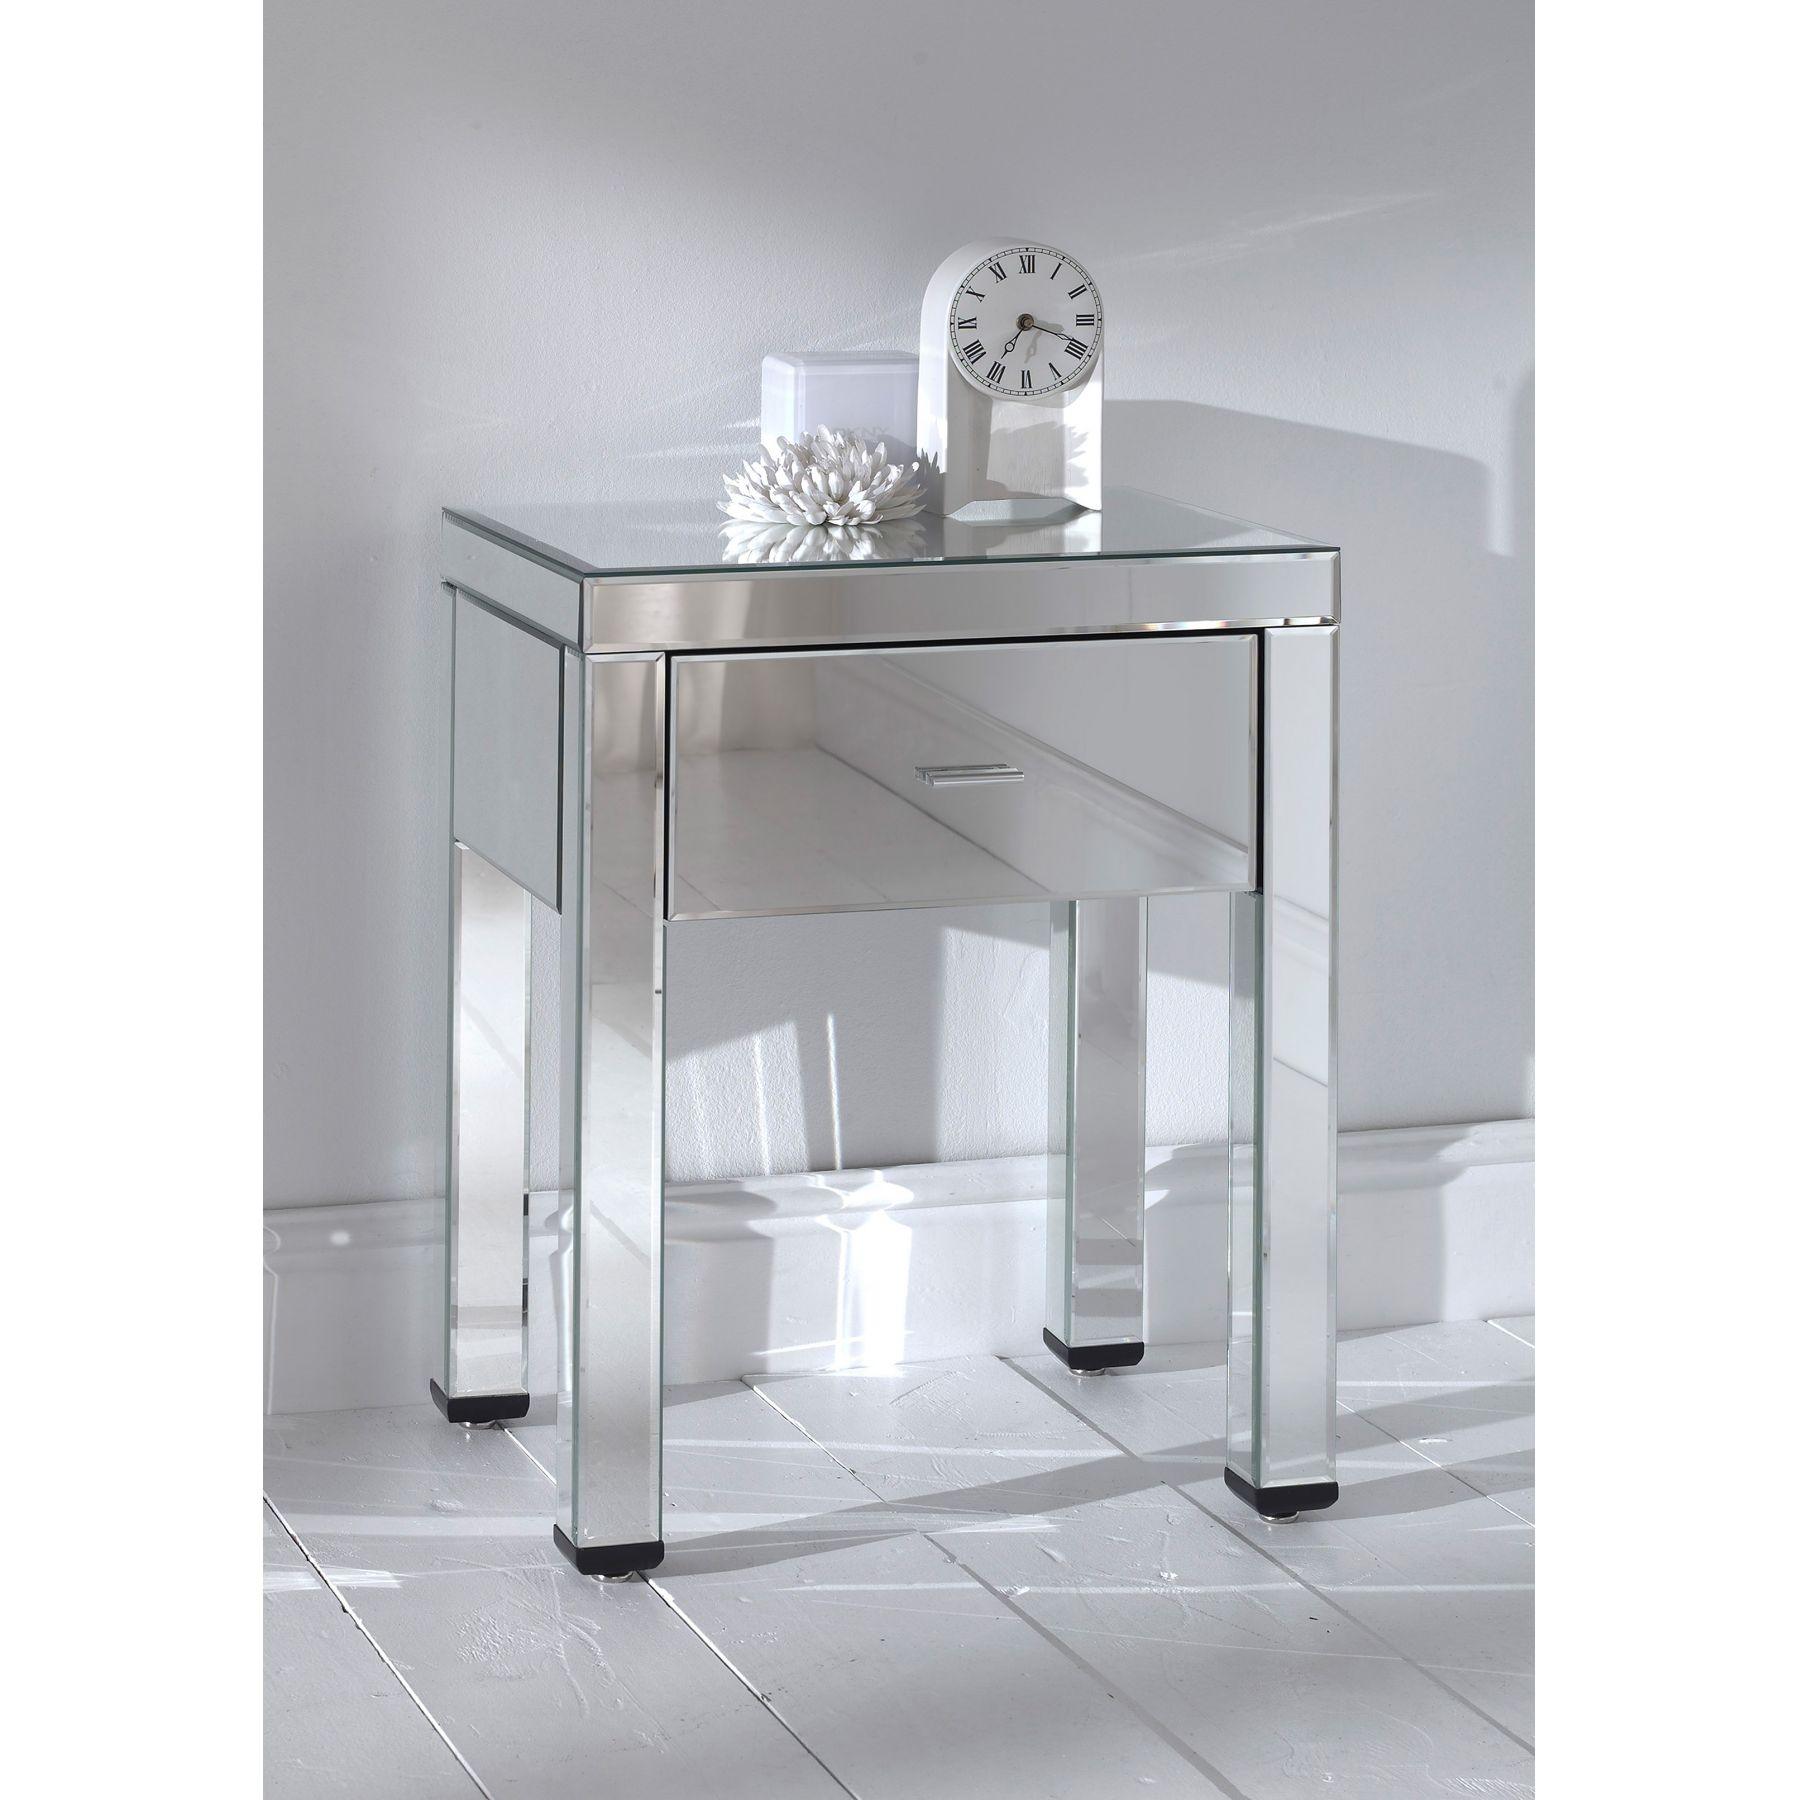 diy mirrored side table beblicanto designs nice cube accent slim glass black wicker patio furniture large end pottery barn outdoor nesting tables classic contemporary banquet